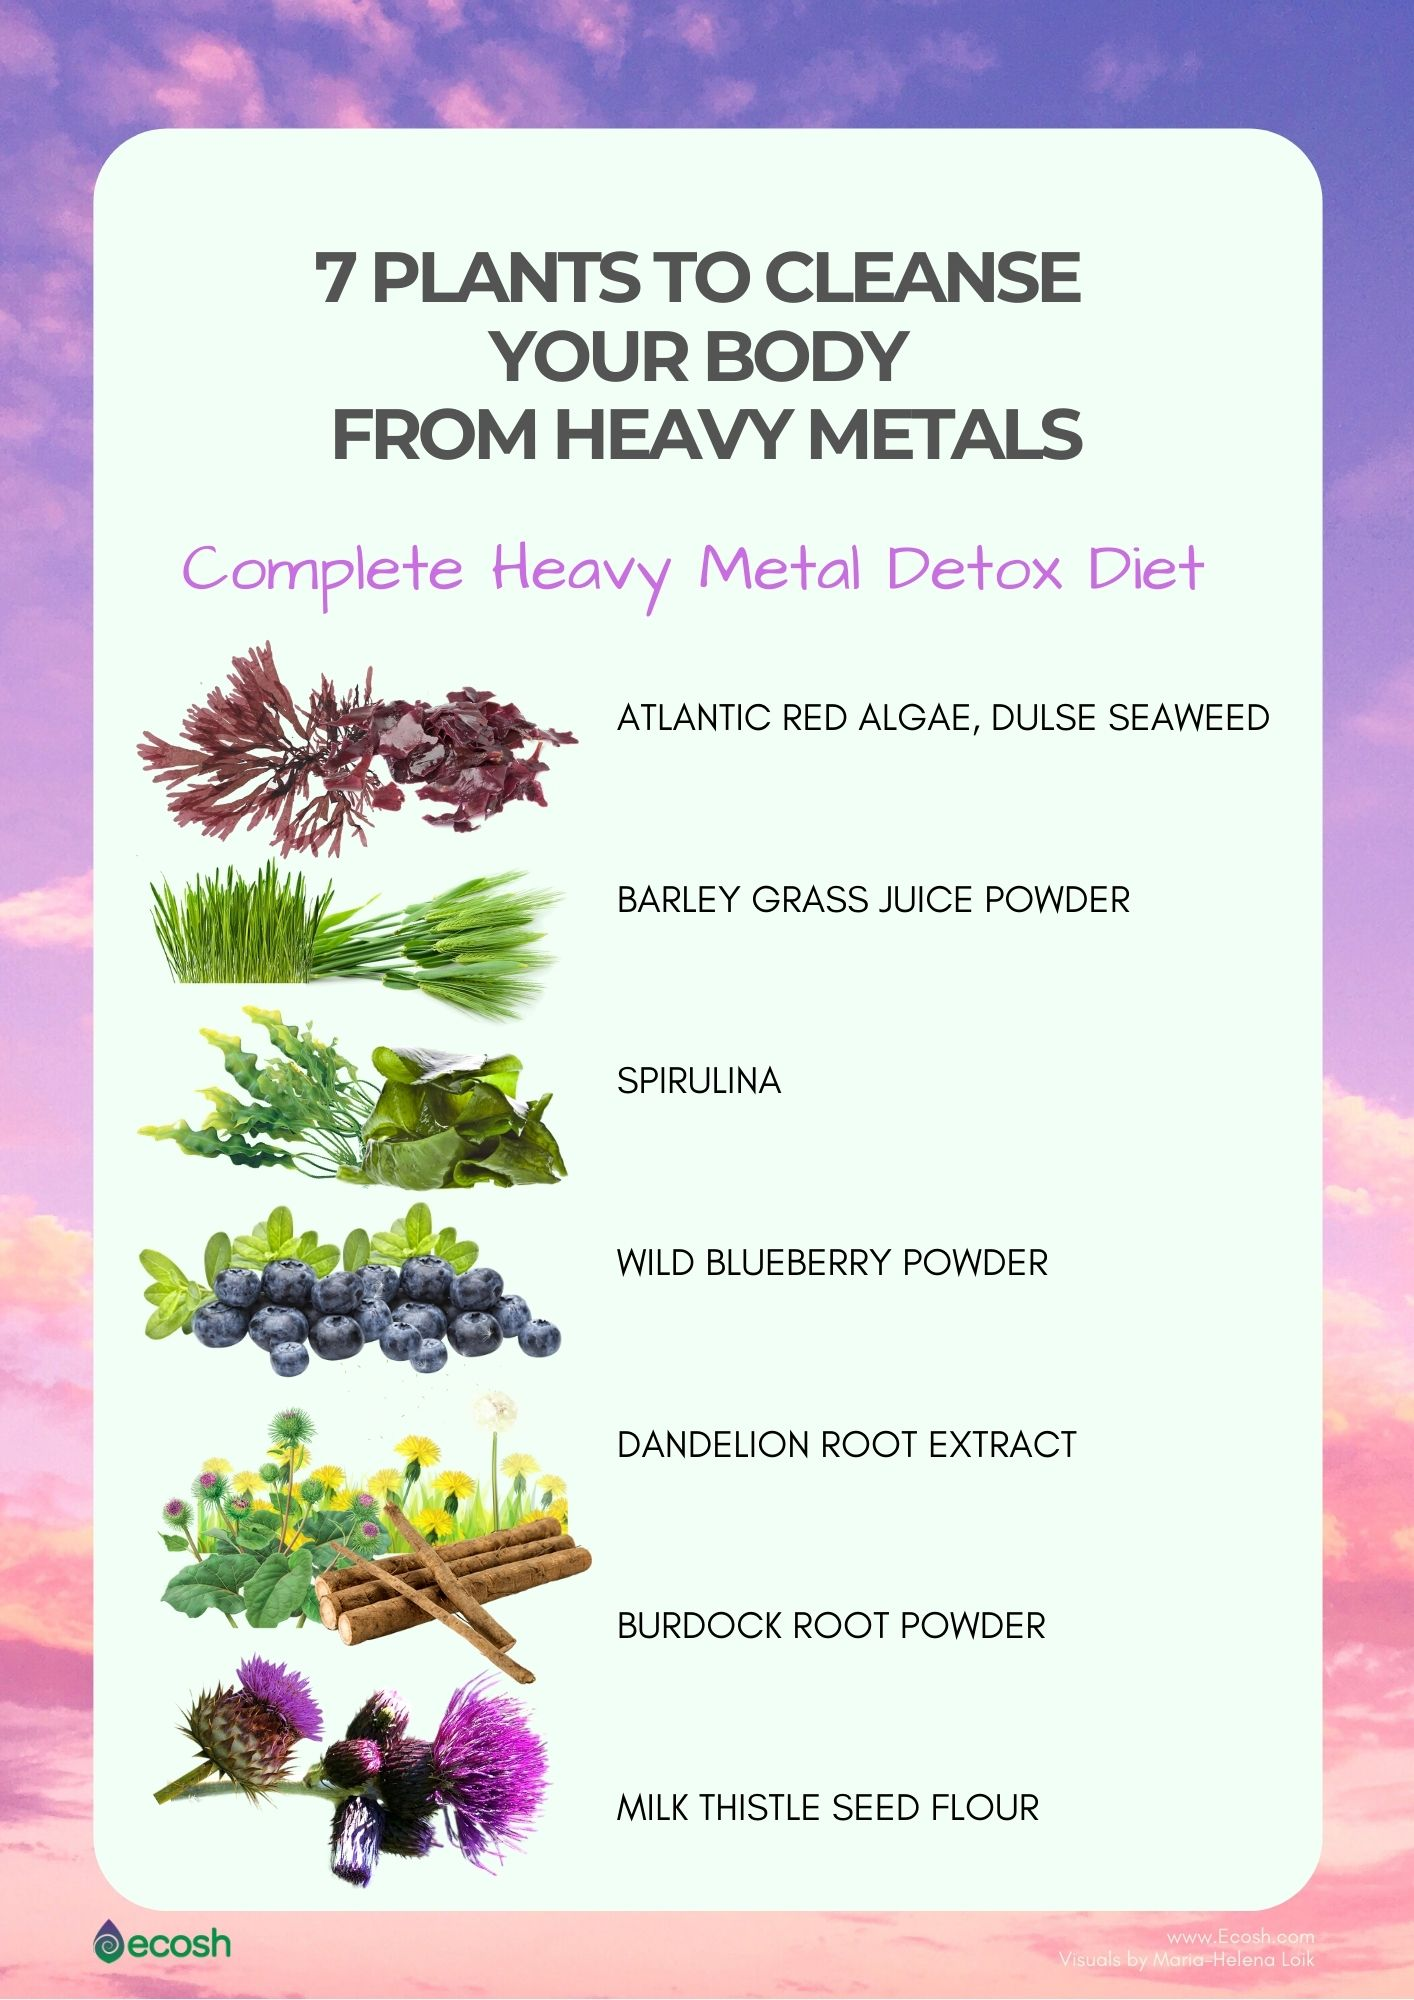 Ecosh_Detox_From_Heavy_Metals_Cleanse_Your_Body_From_Heavy_Metals